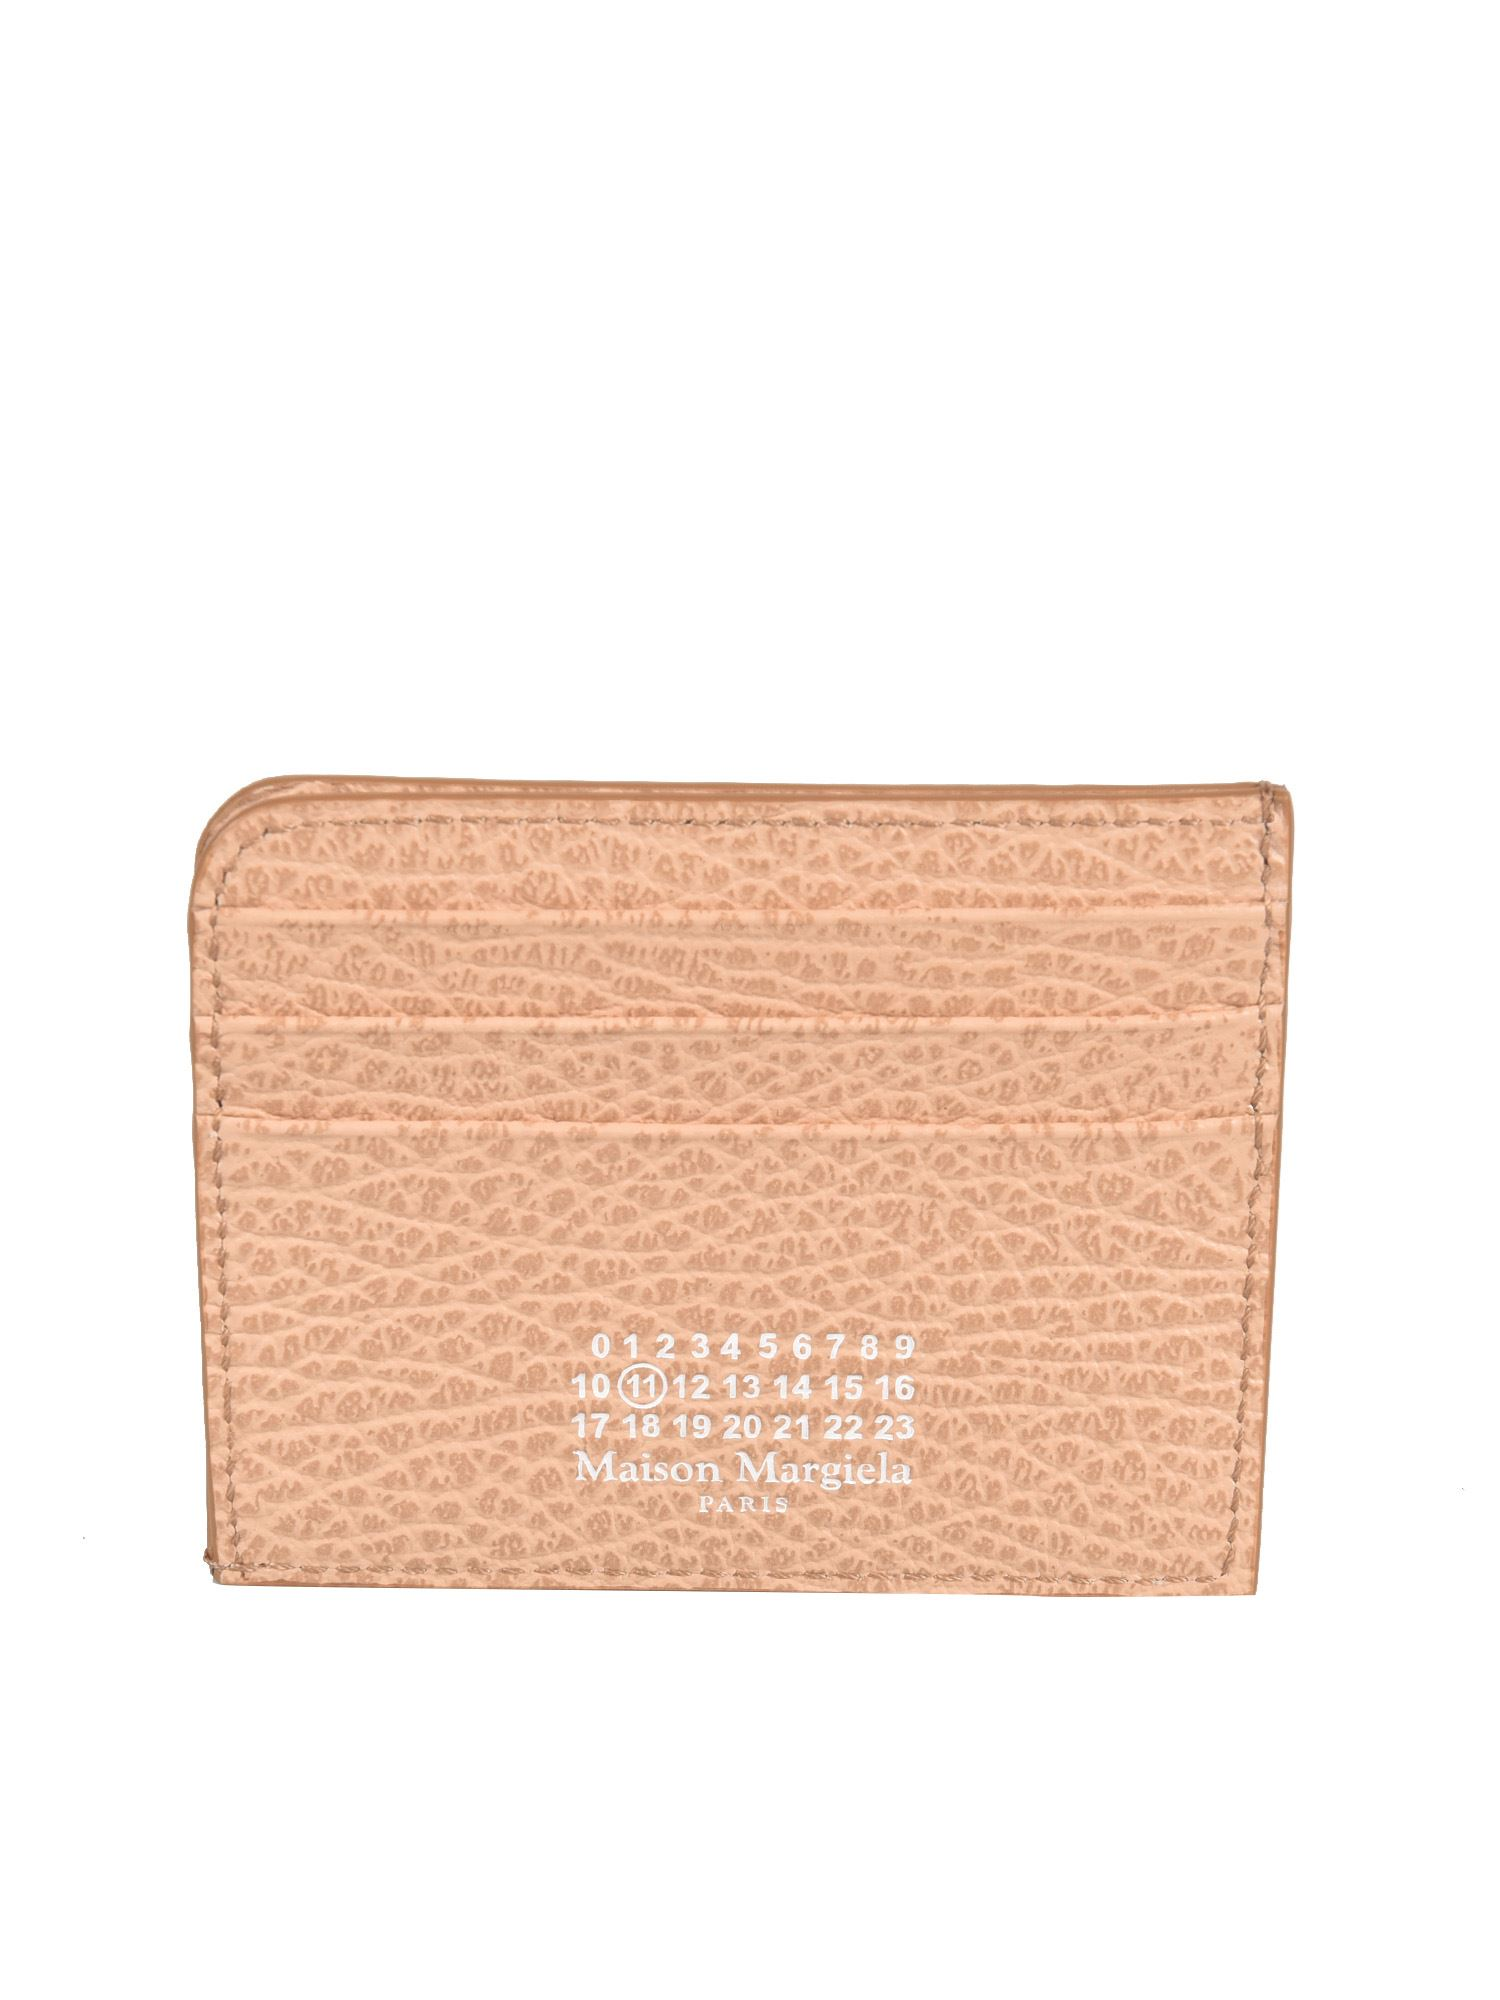 Maison Margiela LOGO CARD HOLDER IN ORANGE